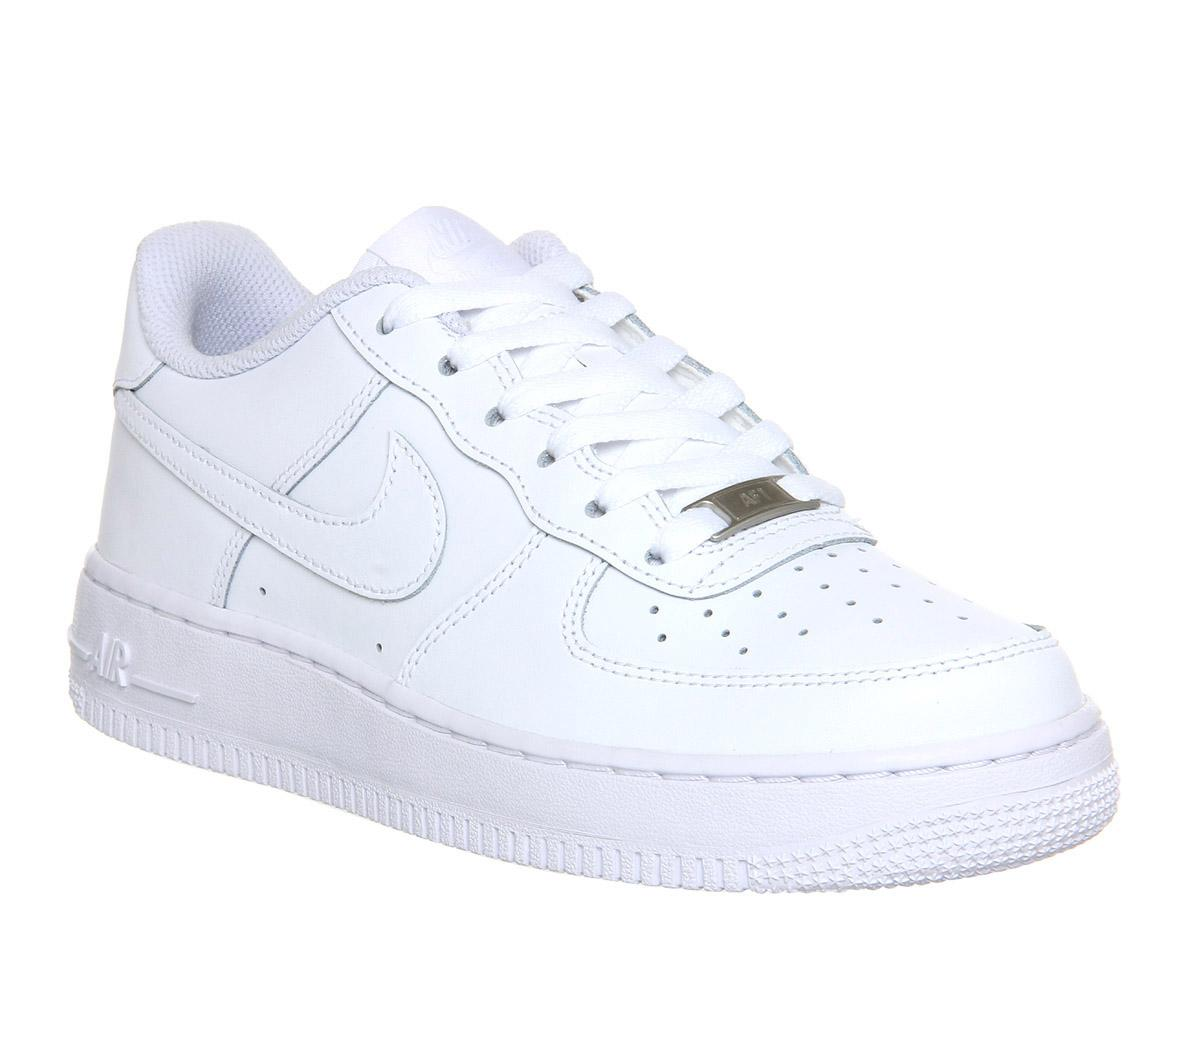 Nike airforce one 37,5